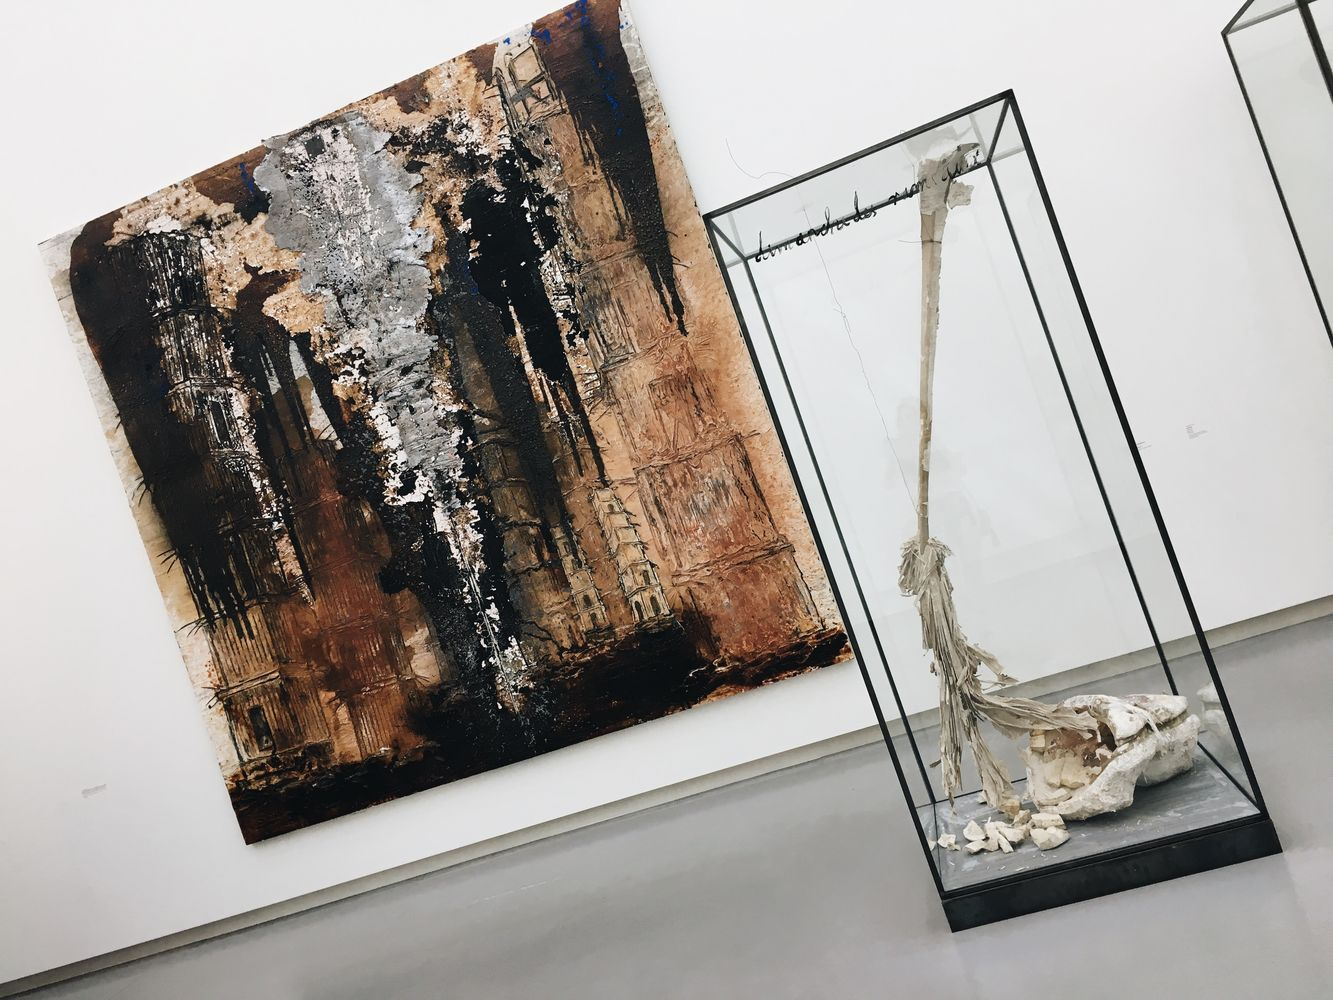 Anselm Kiefer at the Musée Rodin